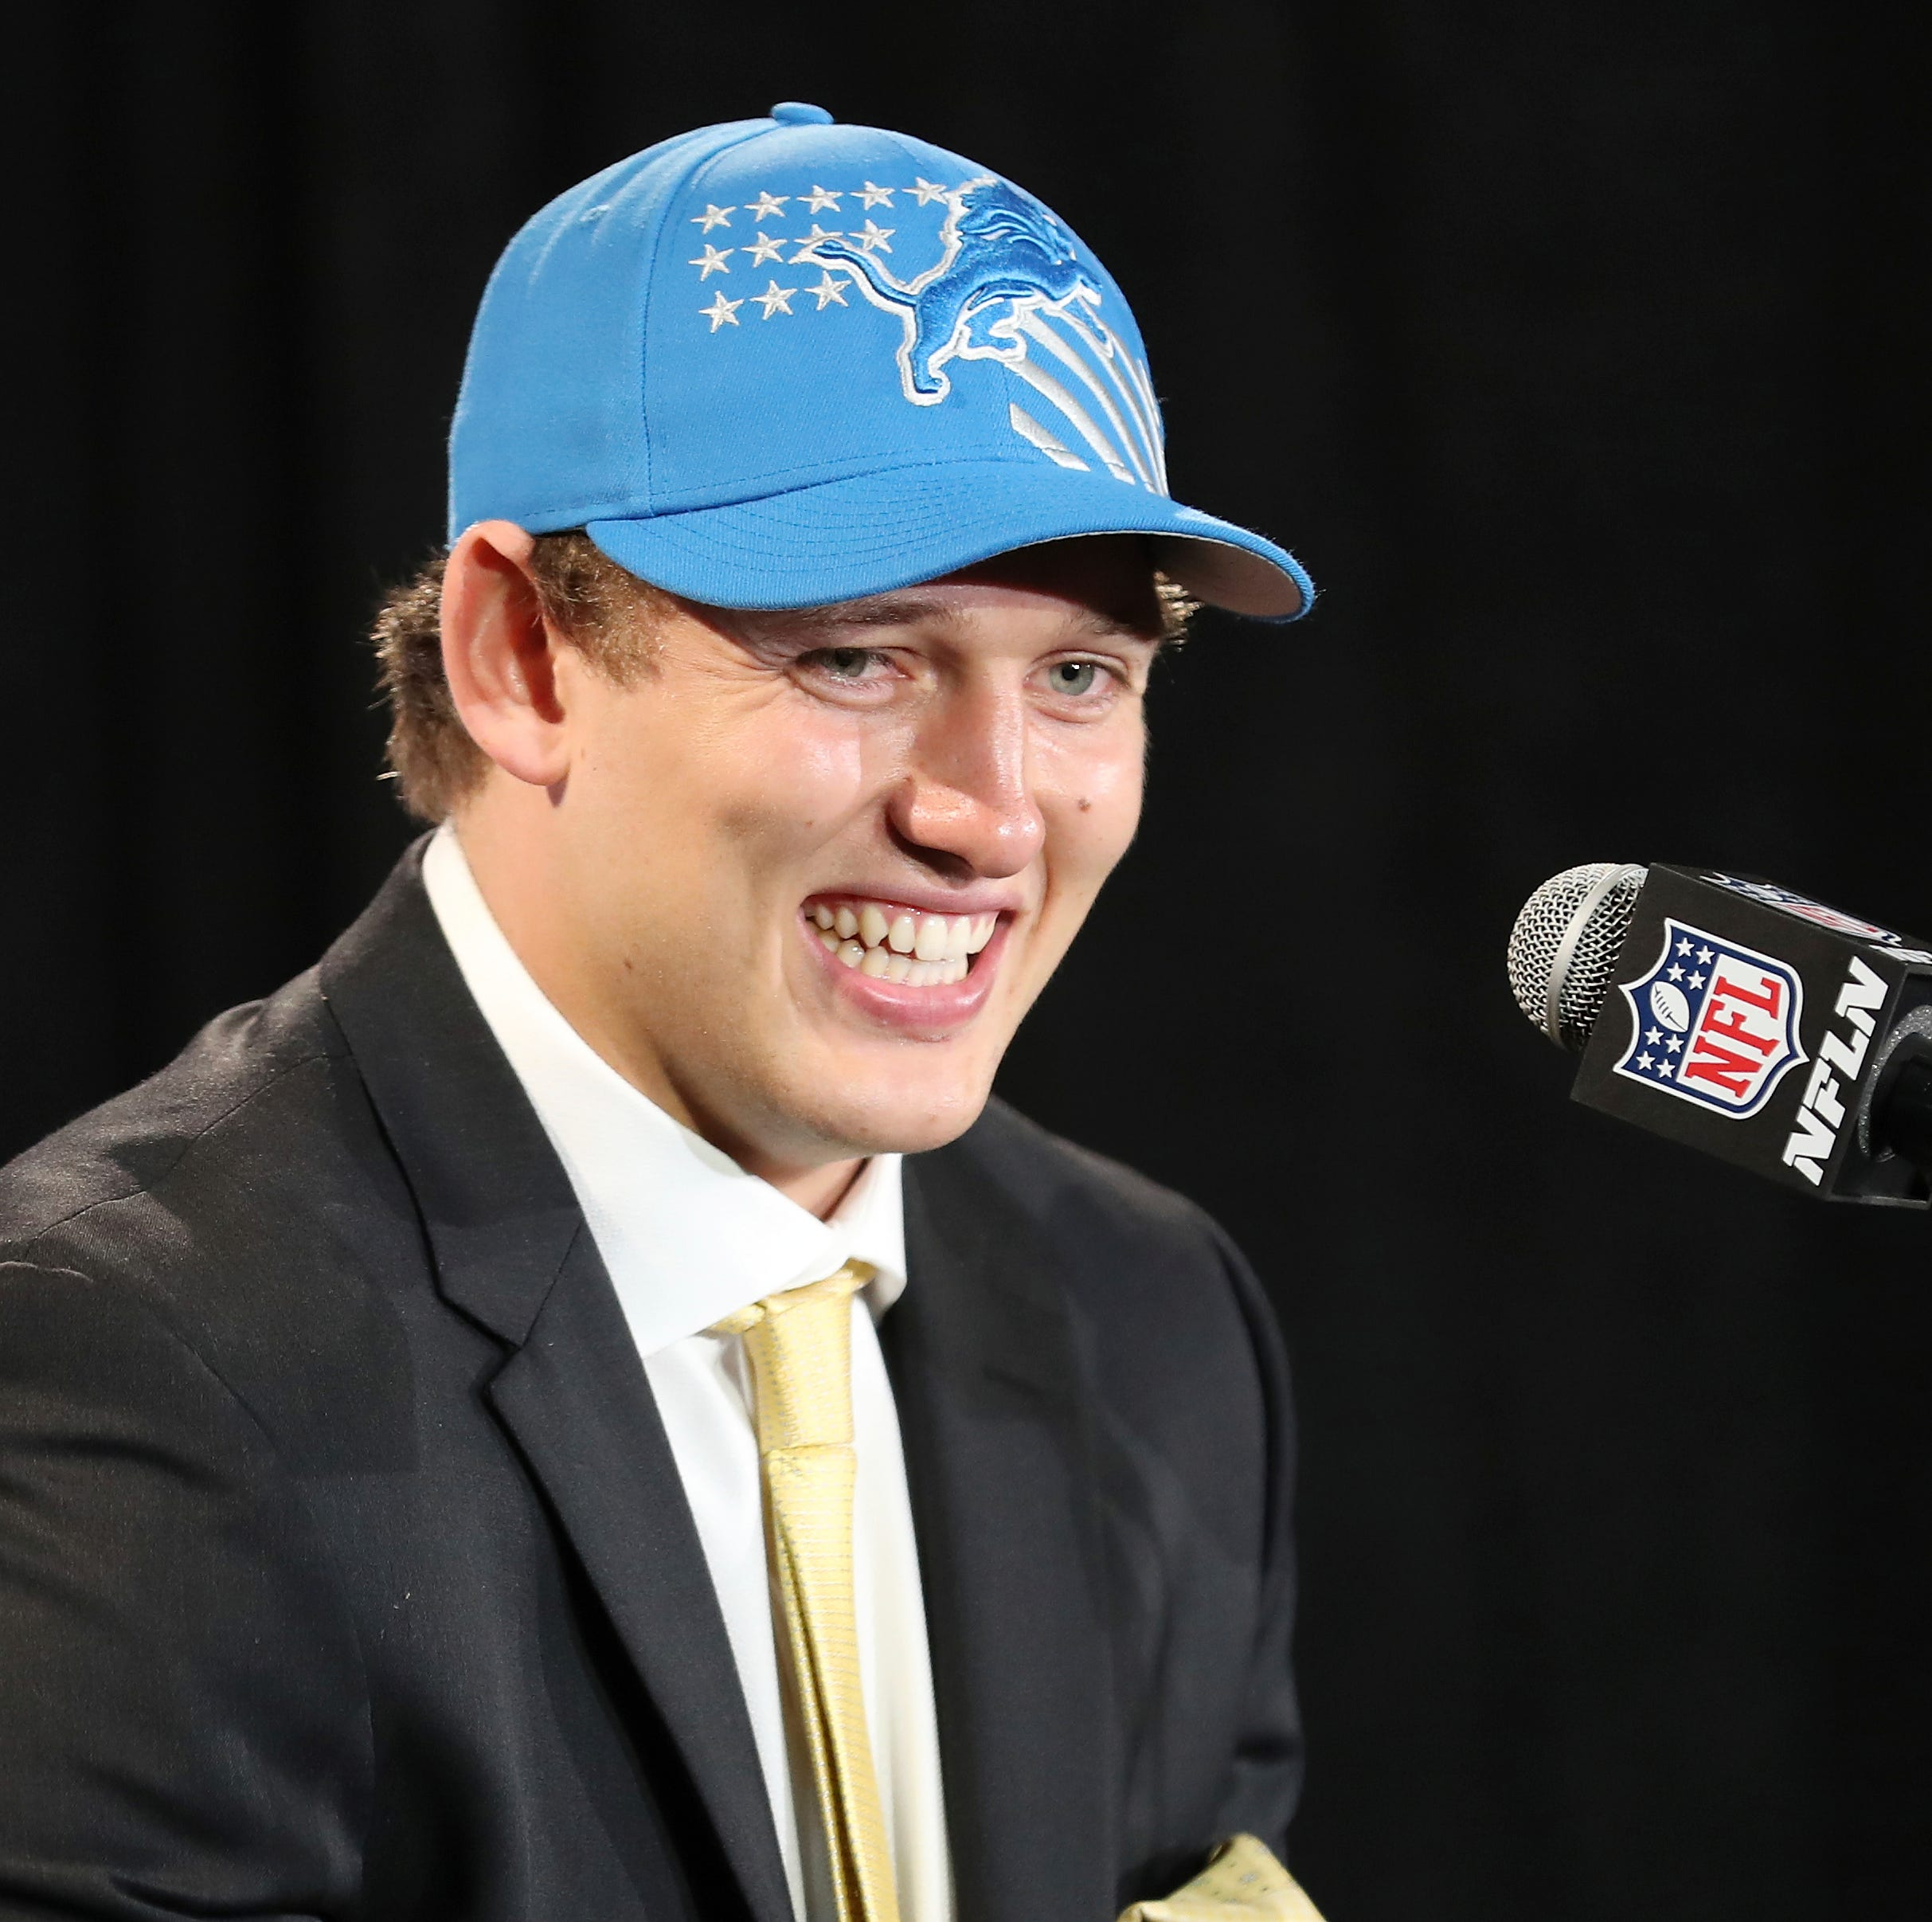 Niyo: History won't haunt Lions with T.J. Hockenson pick